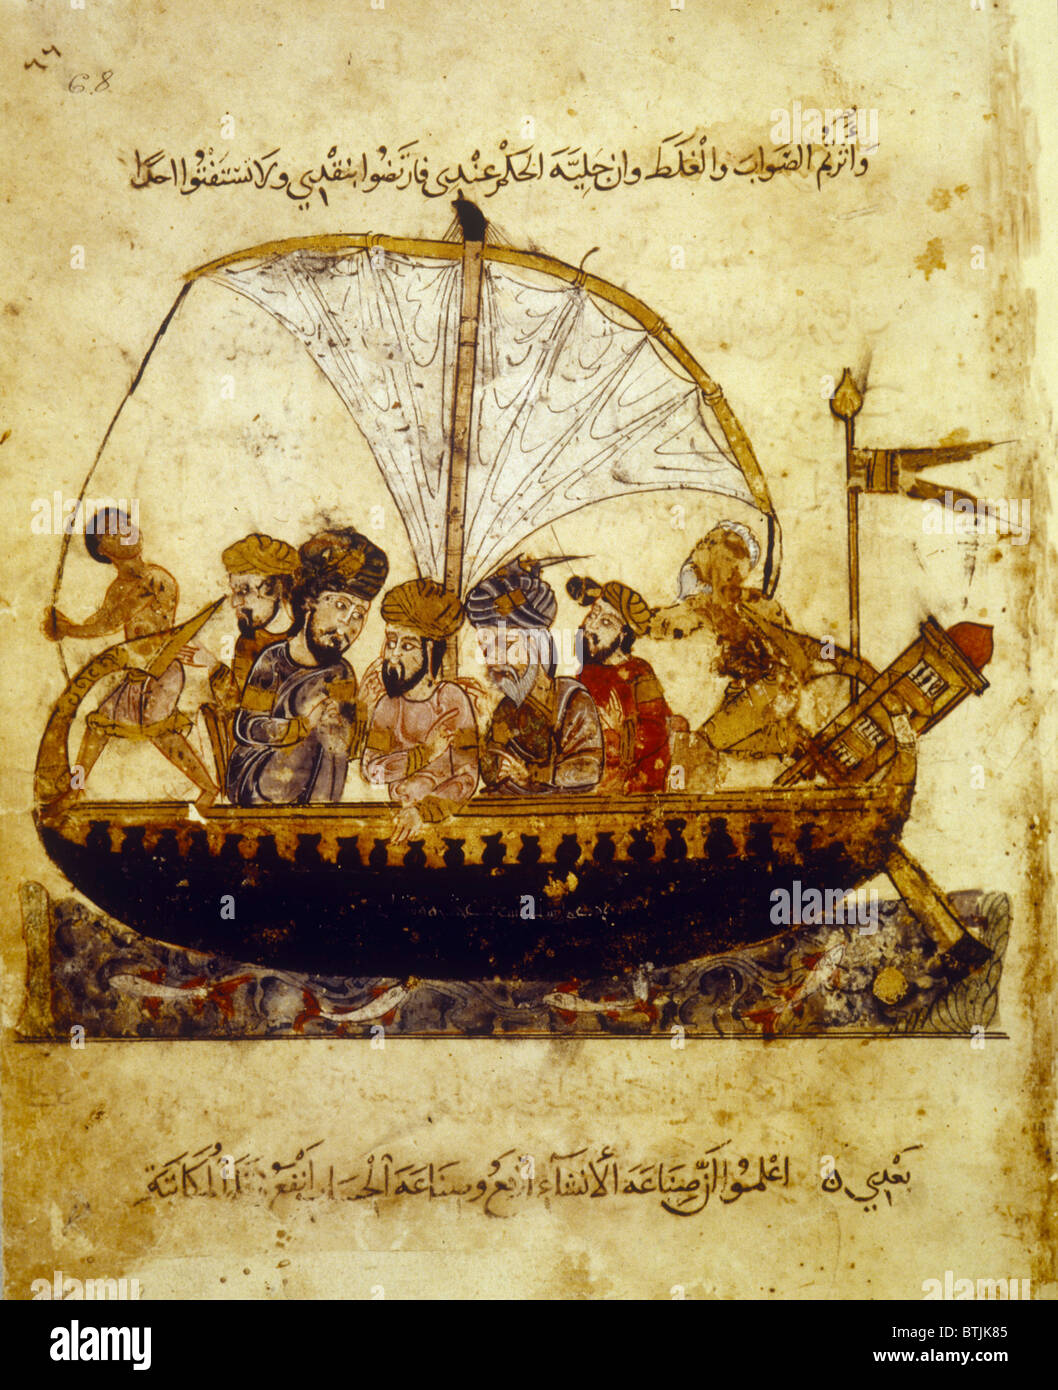 Abu Zayd and Al Harith and Arab Traders in a dhou,  Bibliotheque Nationale, Paris  2117 Ms Arab 6094 Folio 68 - Stock Image